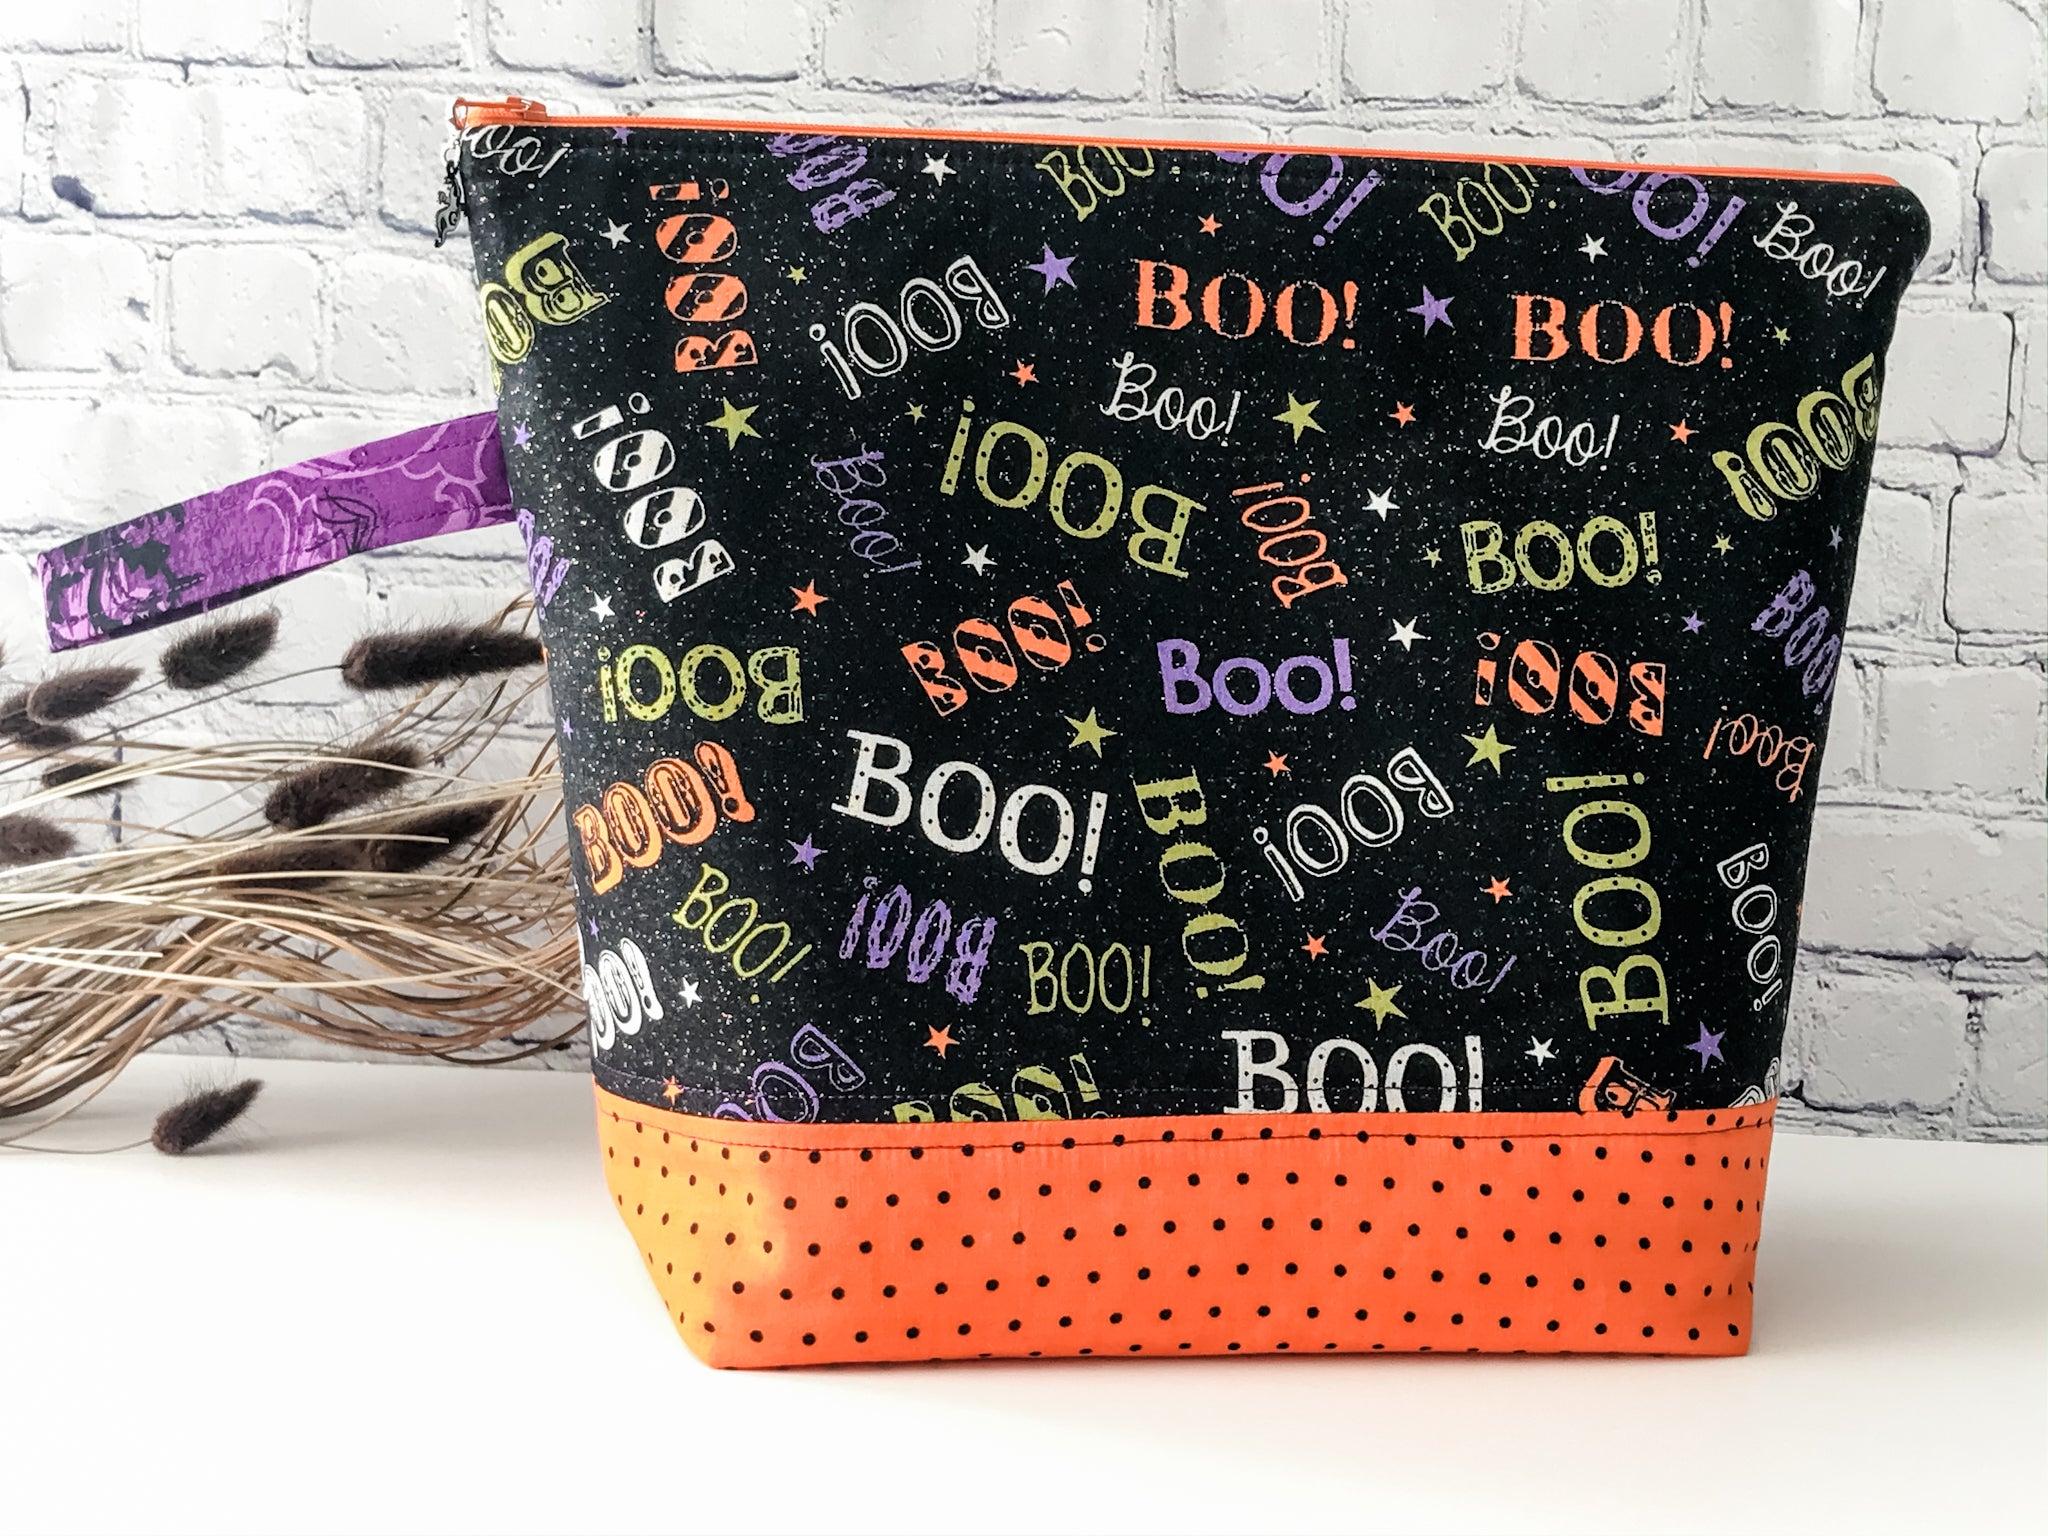 Adventure Bag: Boo Large Zipper Project Bag for Knitting or Crochet - The Handmaker's Bag